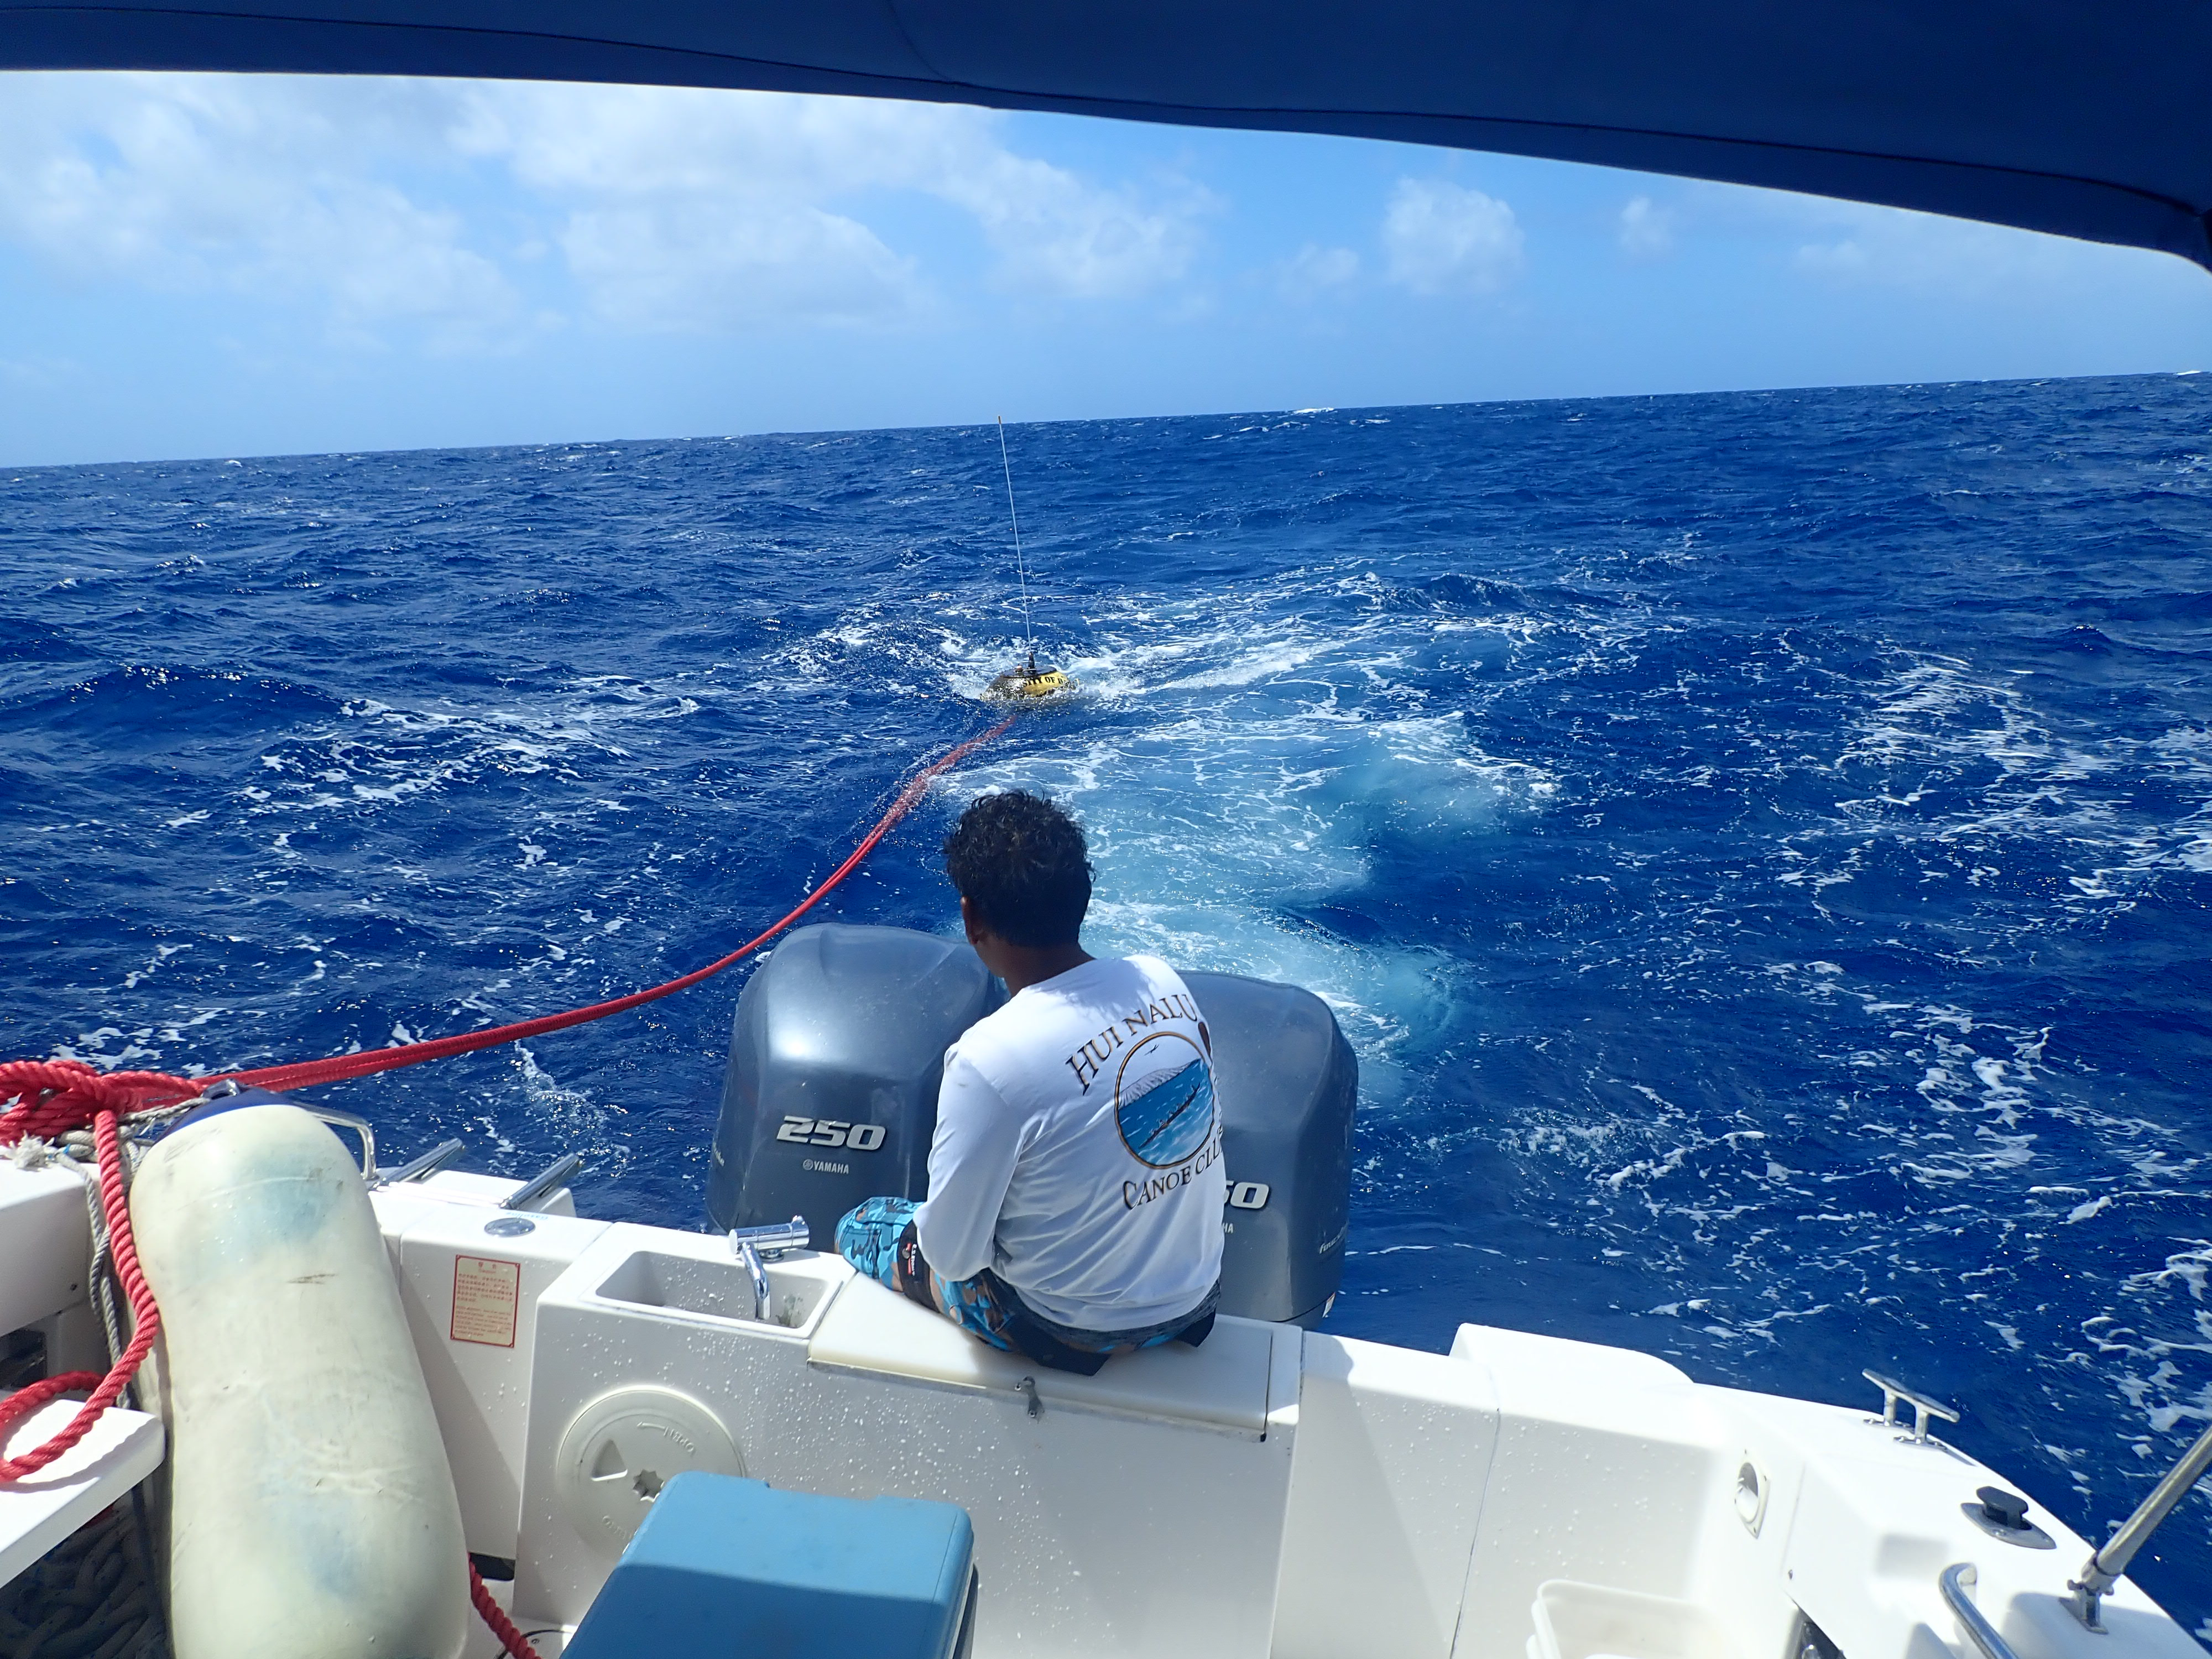 Recovering the drifting buoy